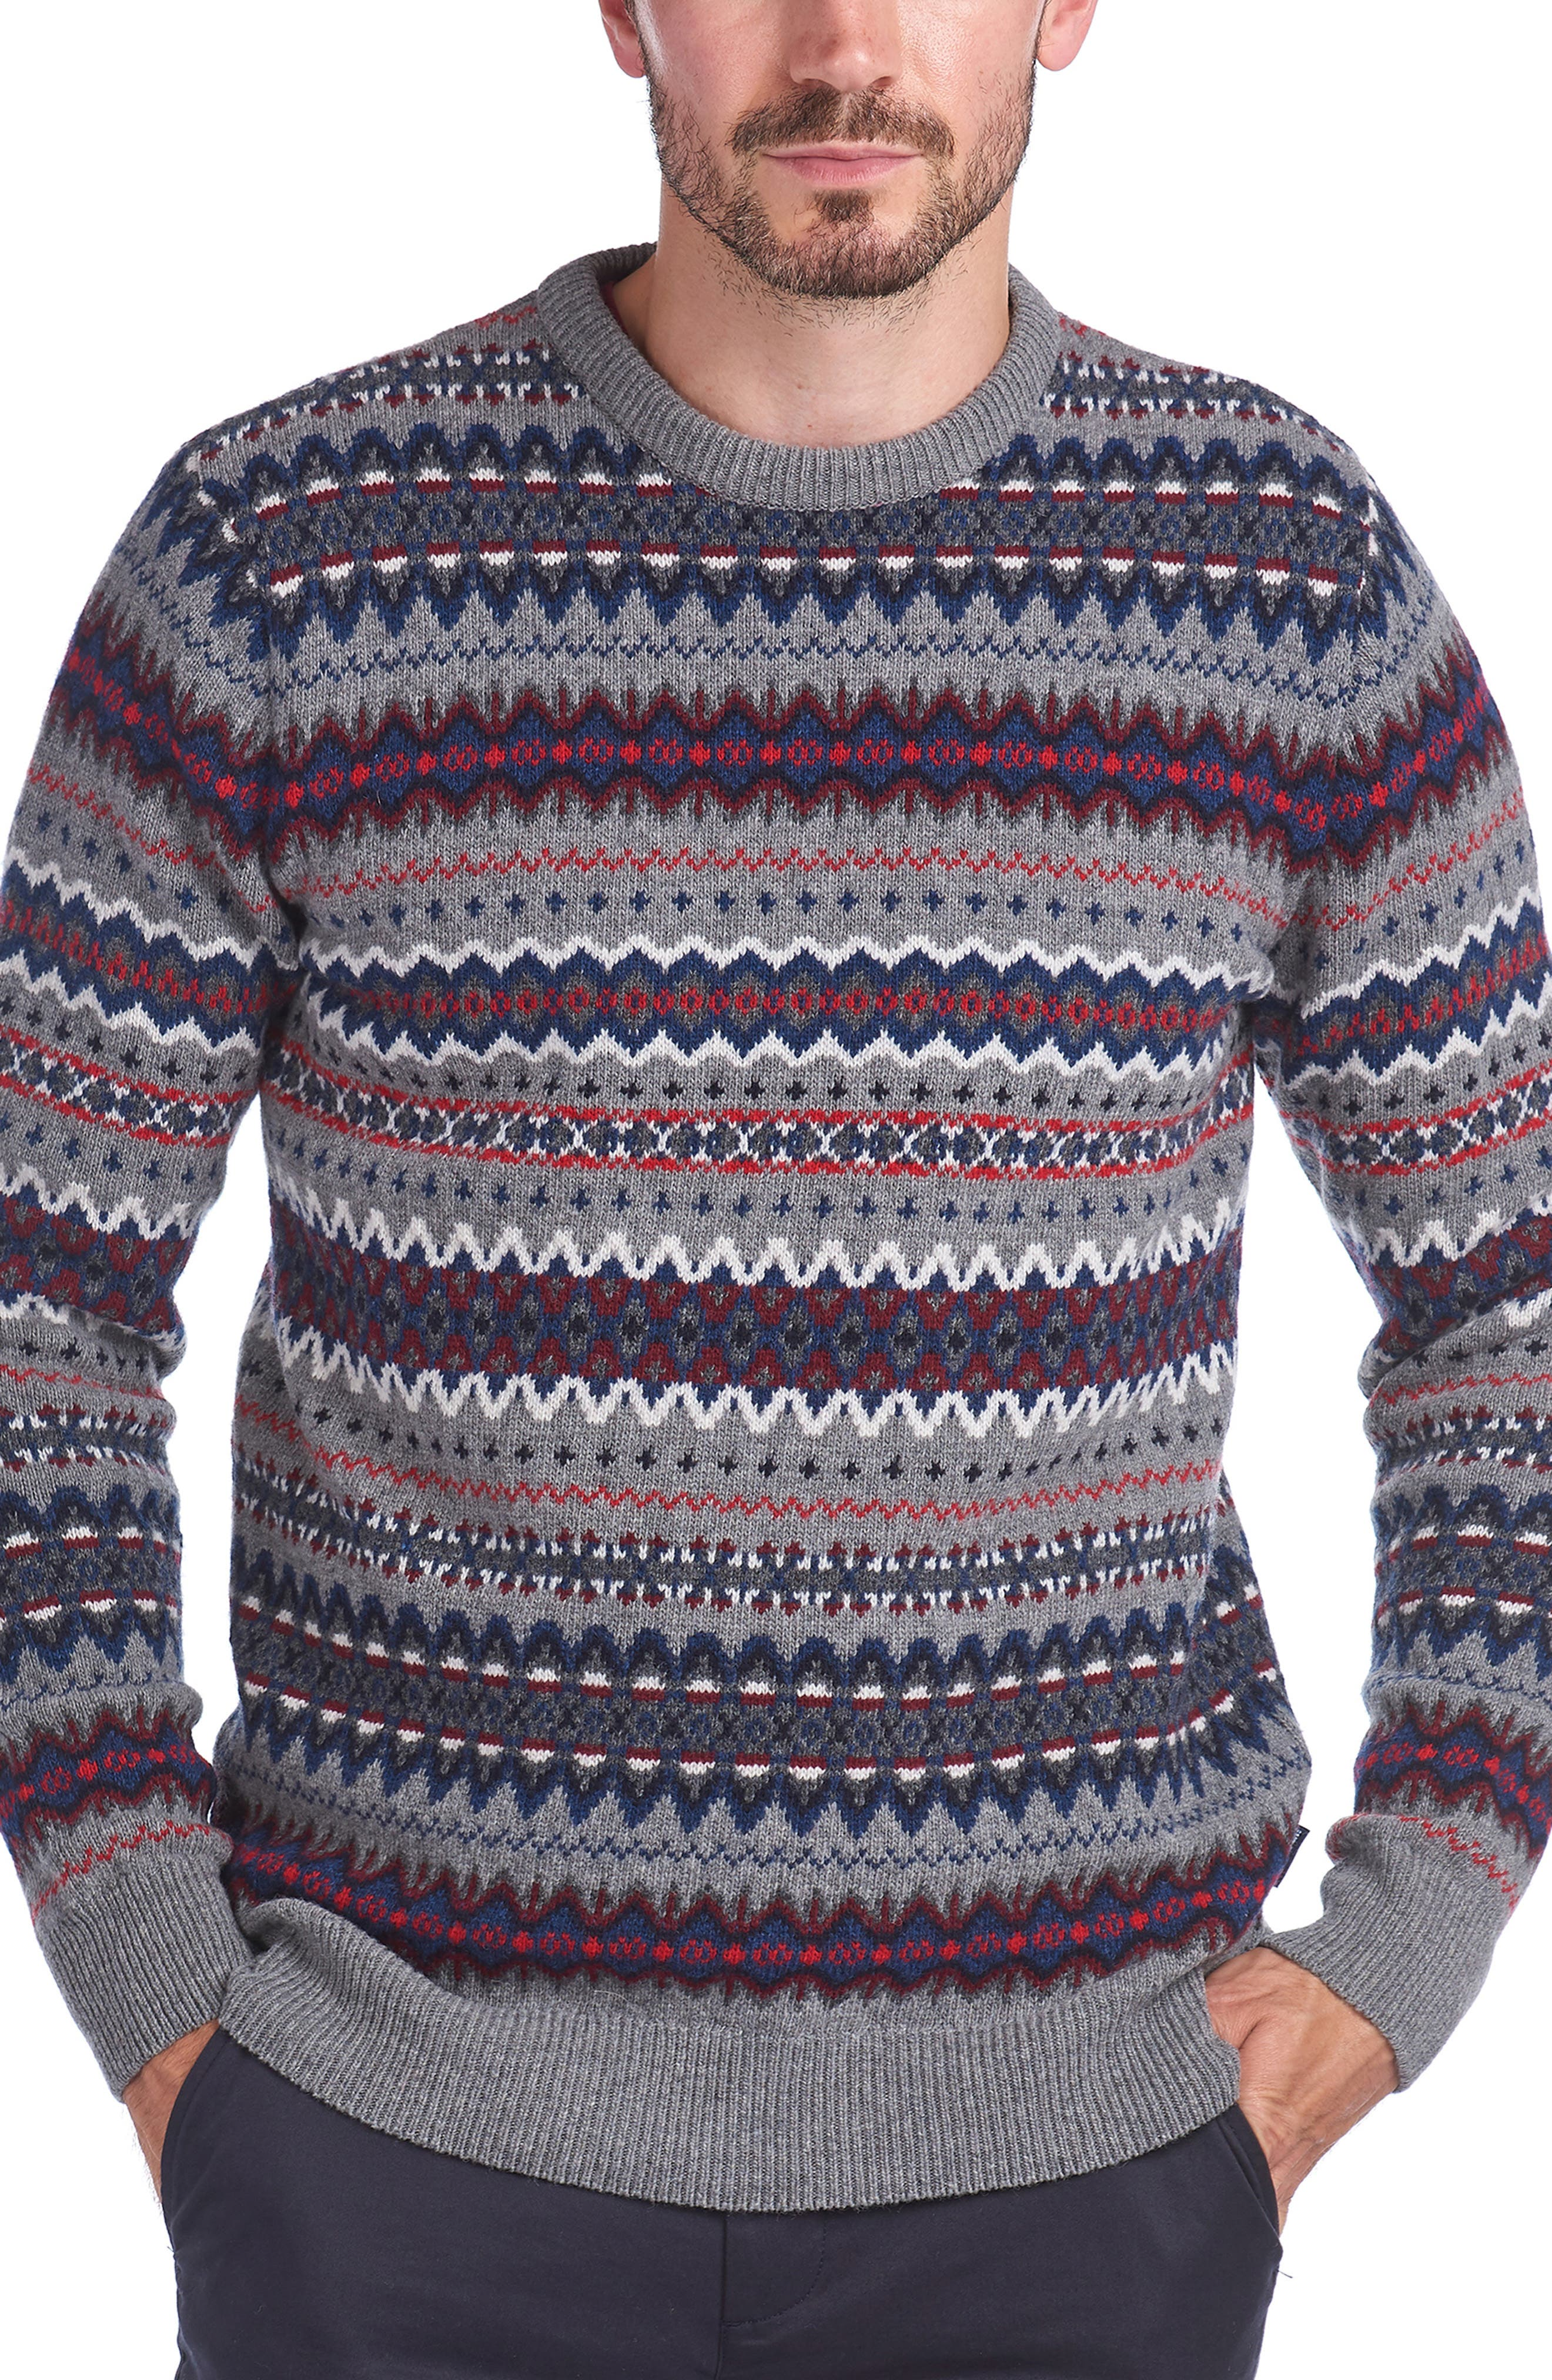 Men's Vintage Sweaters History Mens Barbour Case Fair Isle Wool Crewneck Sweater $125.00 AT vintagedancer.com